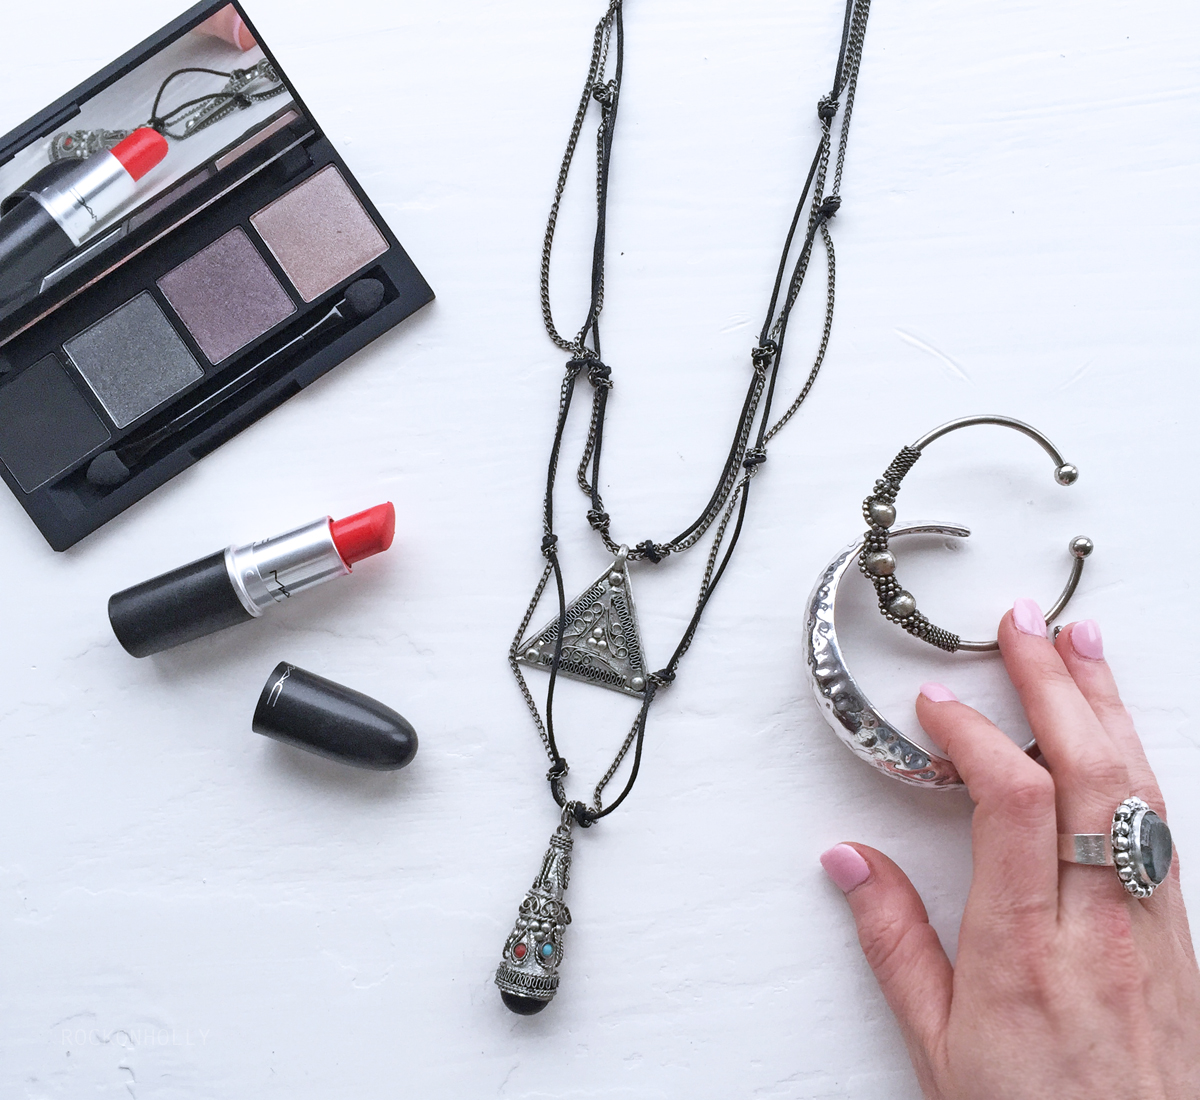 Boho Jewellery from Her Curiosity on the Rock On Holly Blog